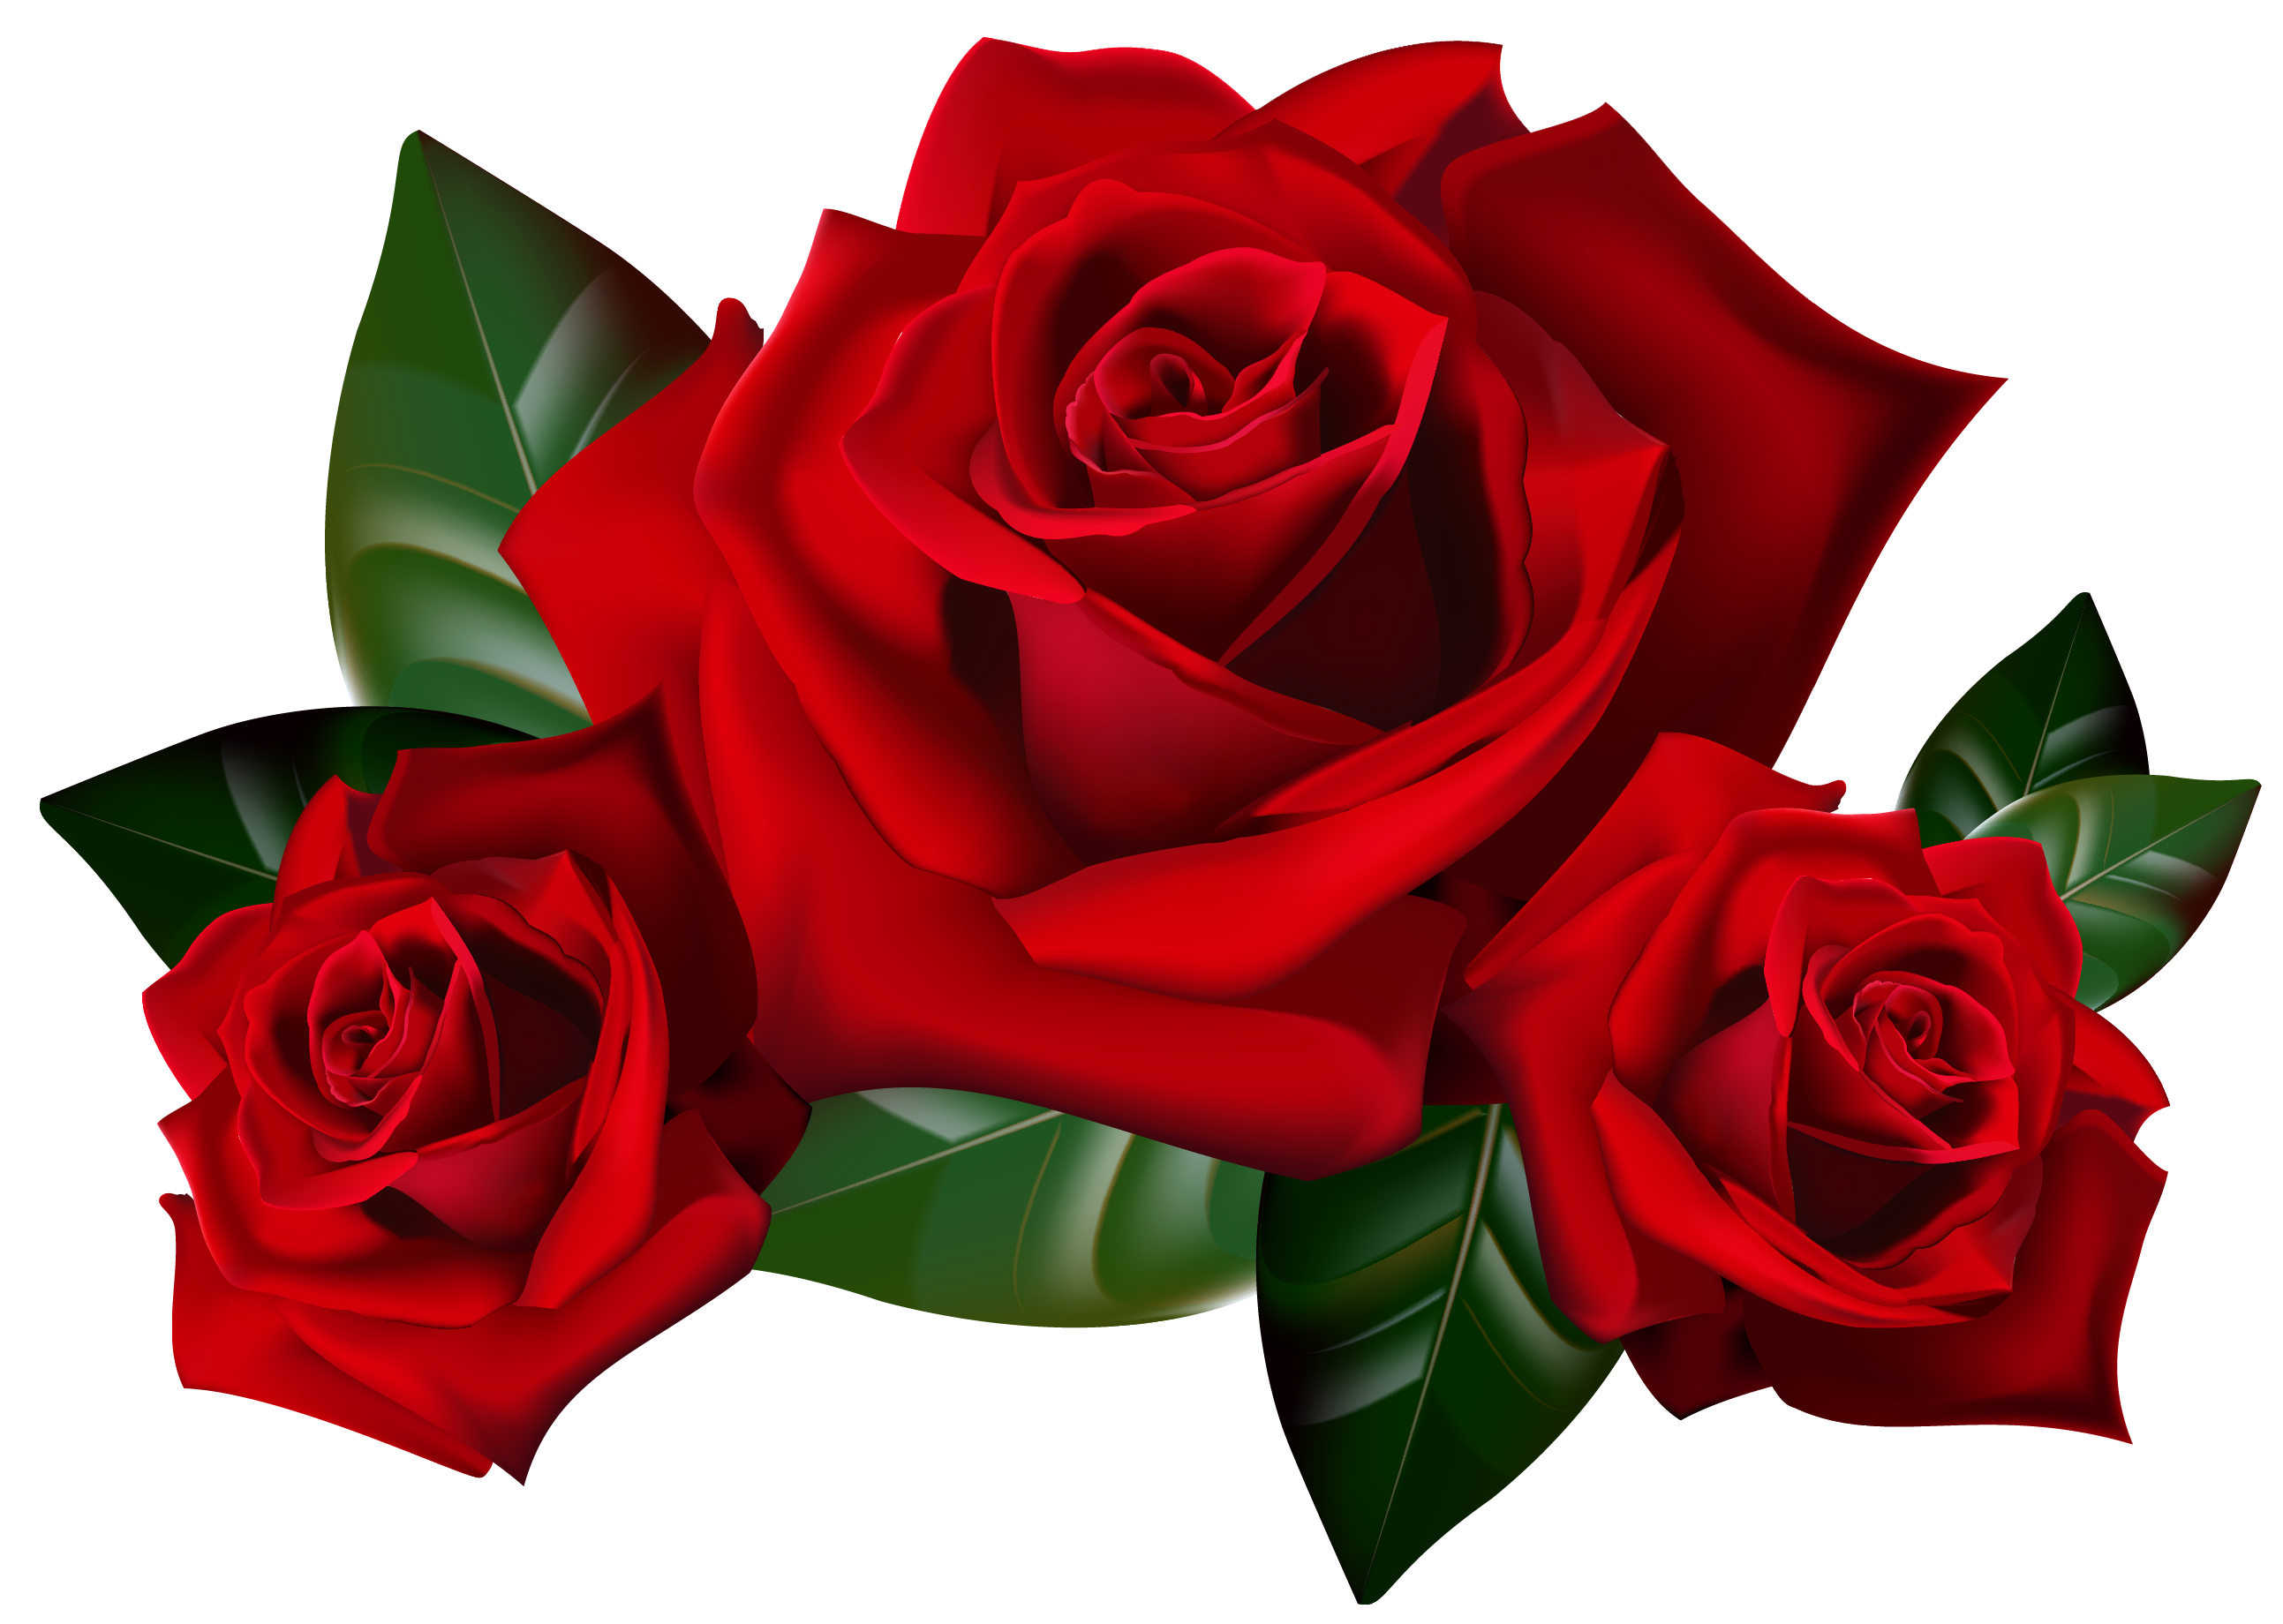 Red rose clipart image png transparent library Red Roses PNG Clipart Picture | Gallery Yopriceville - High-Quality ... png transparent library